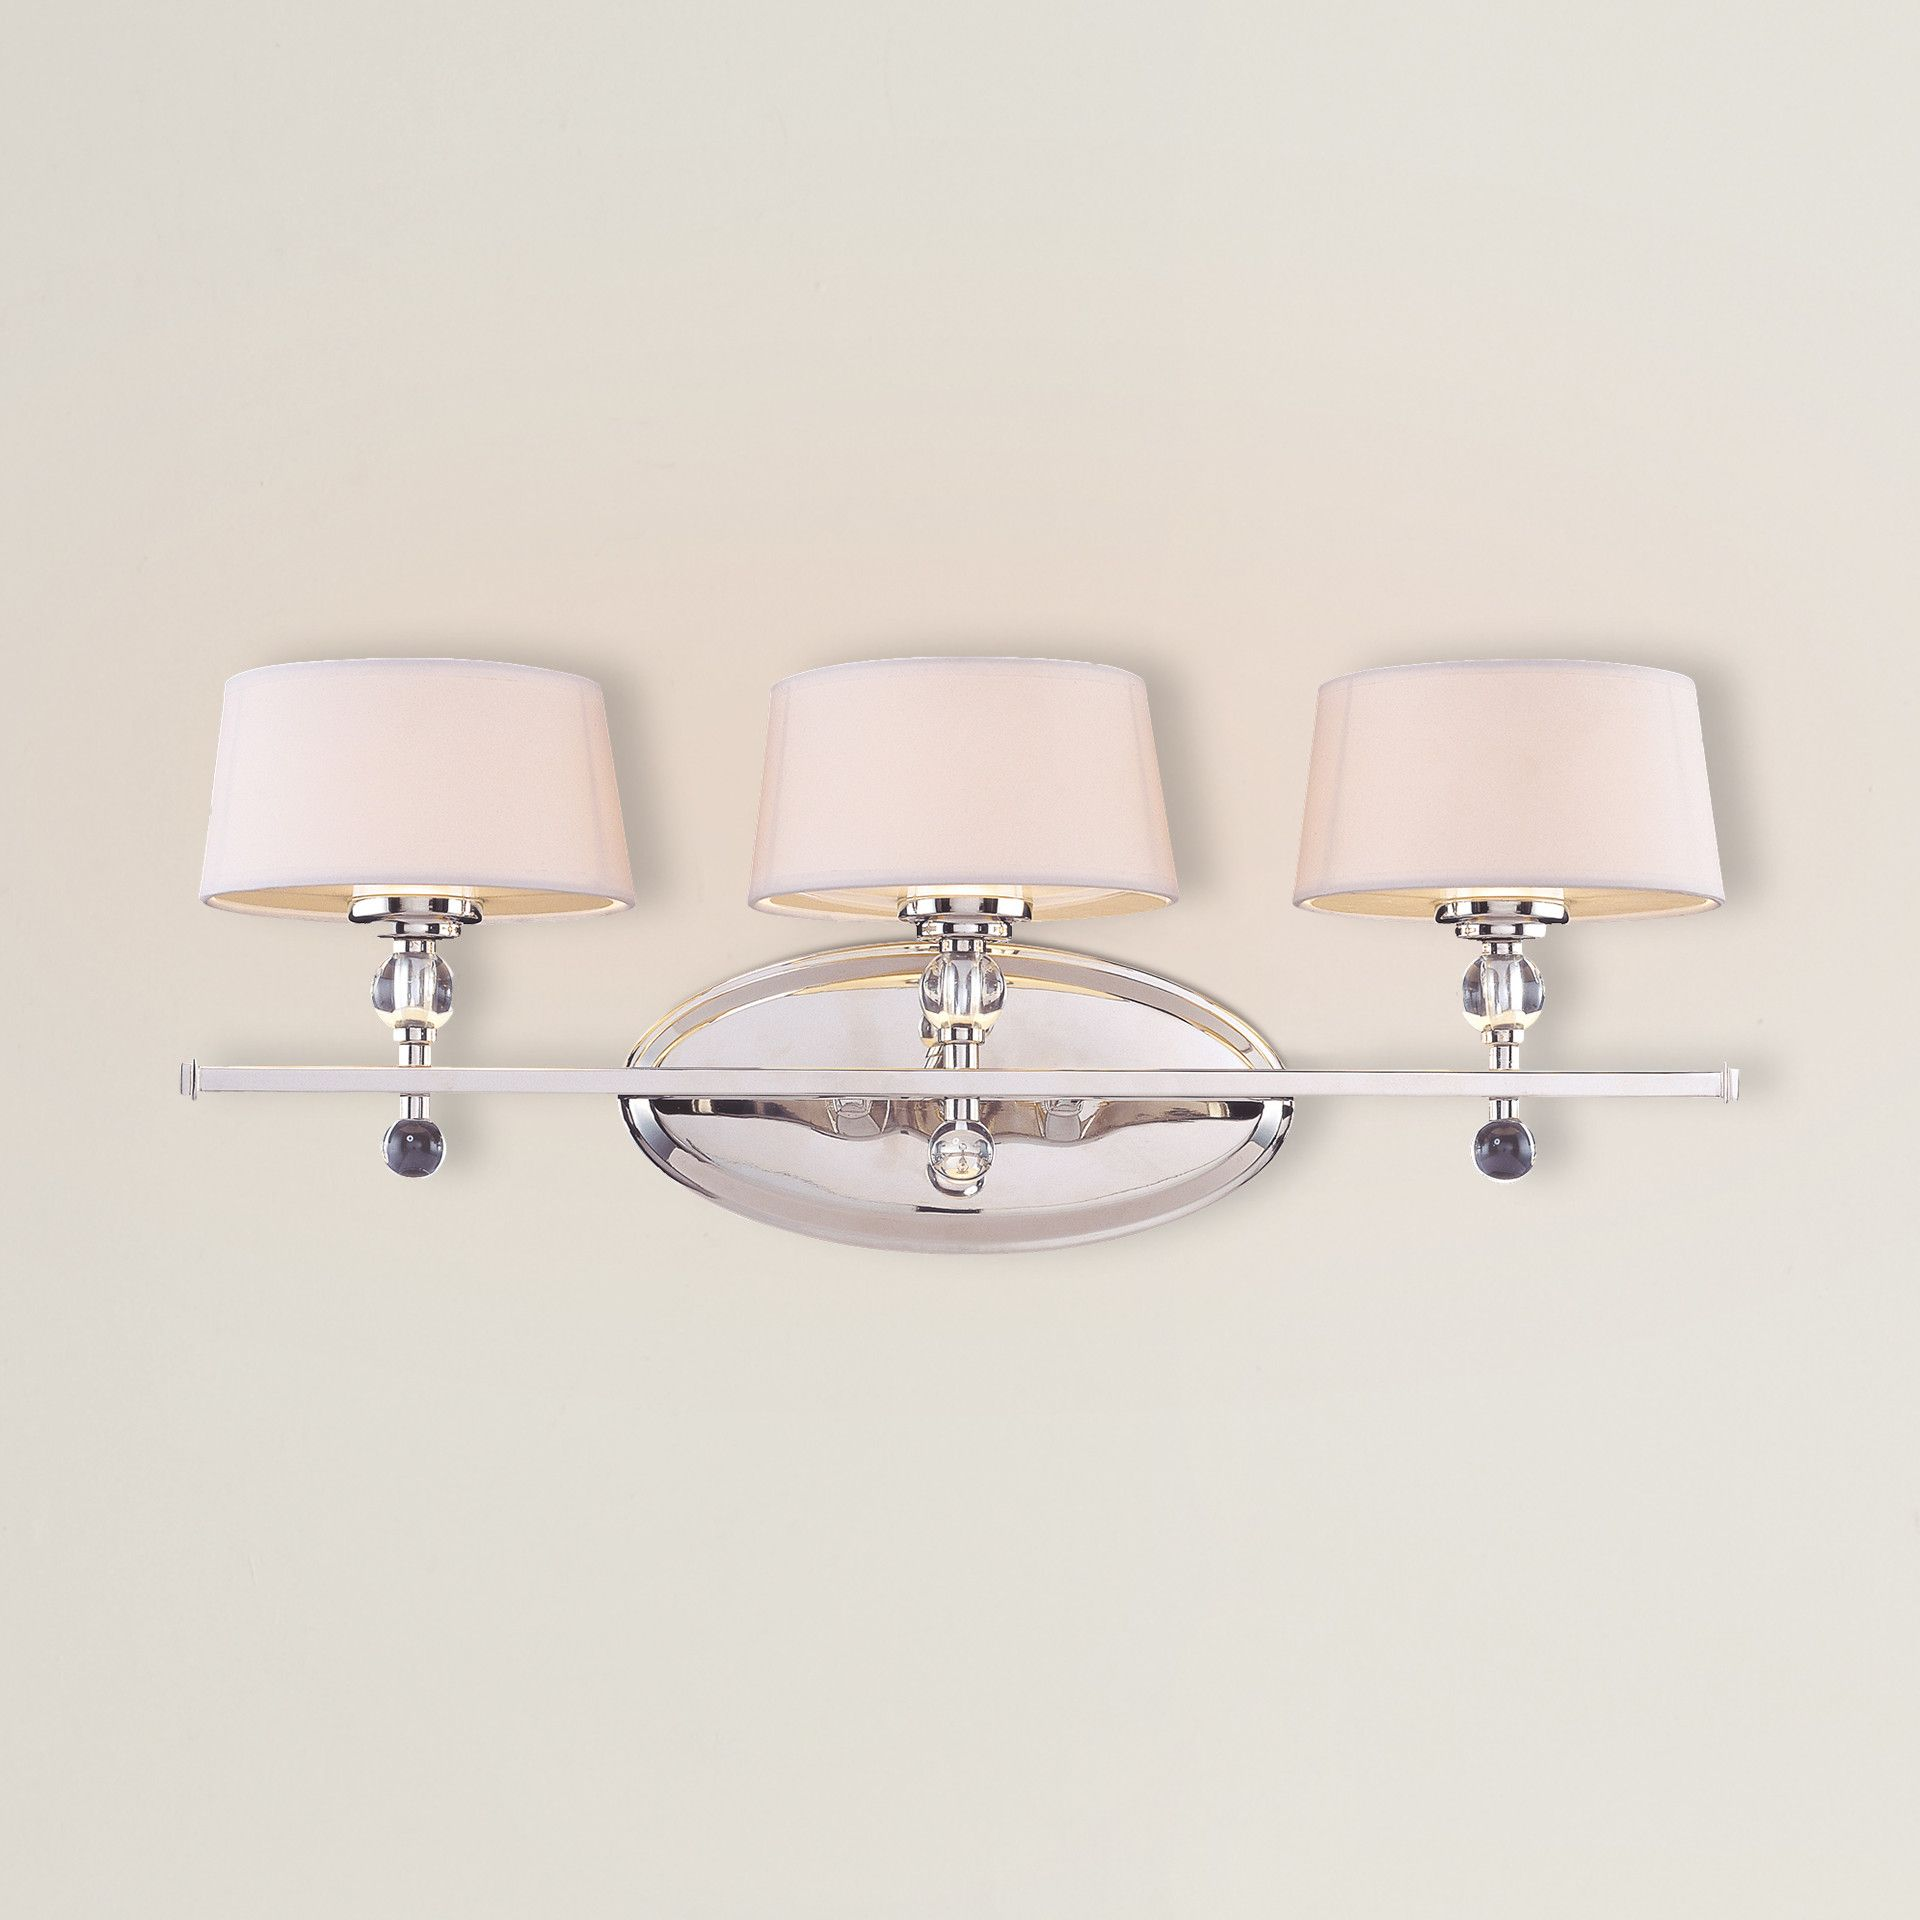 light outlet fixture vanity porcelain with lighting vintage fixtures of new bathroom s